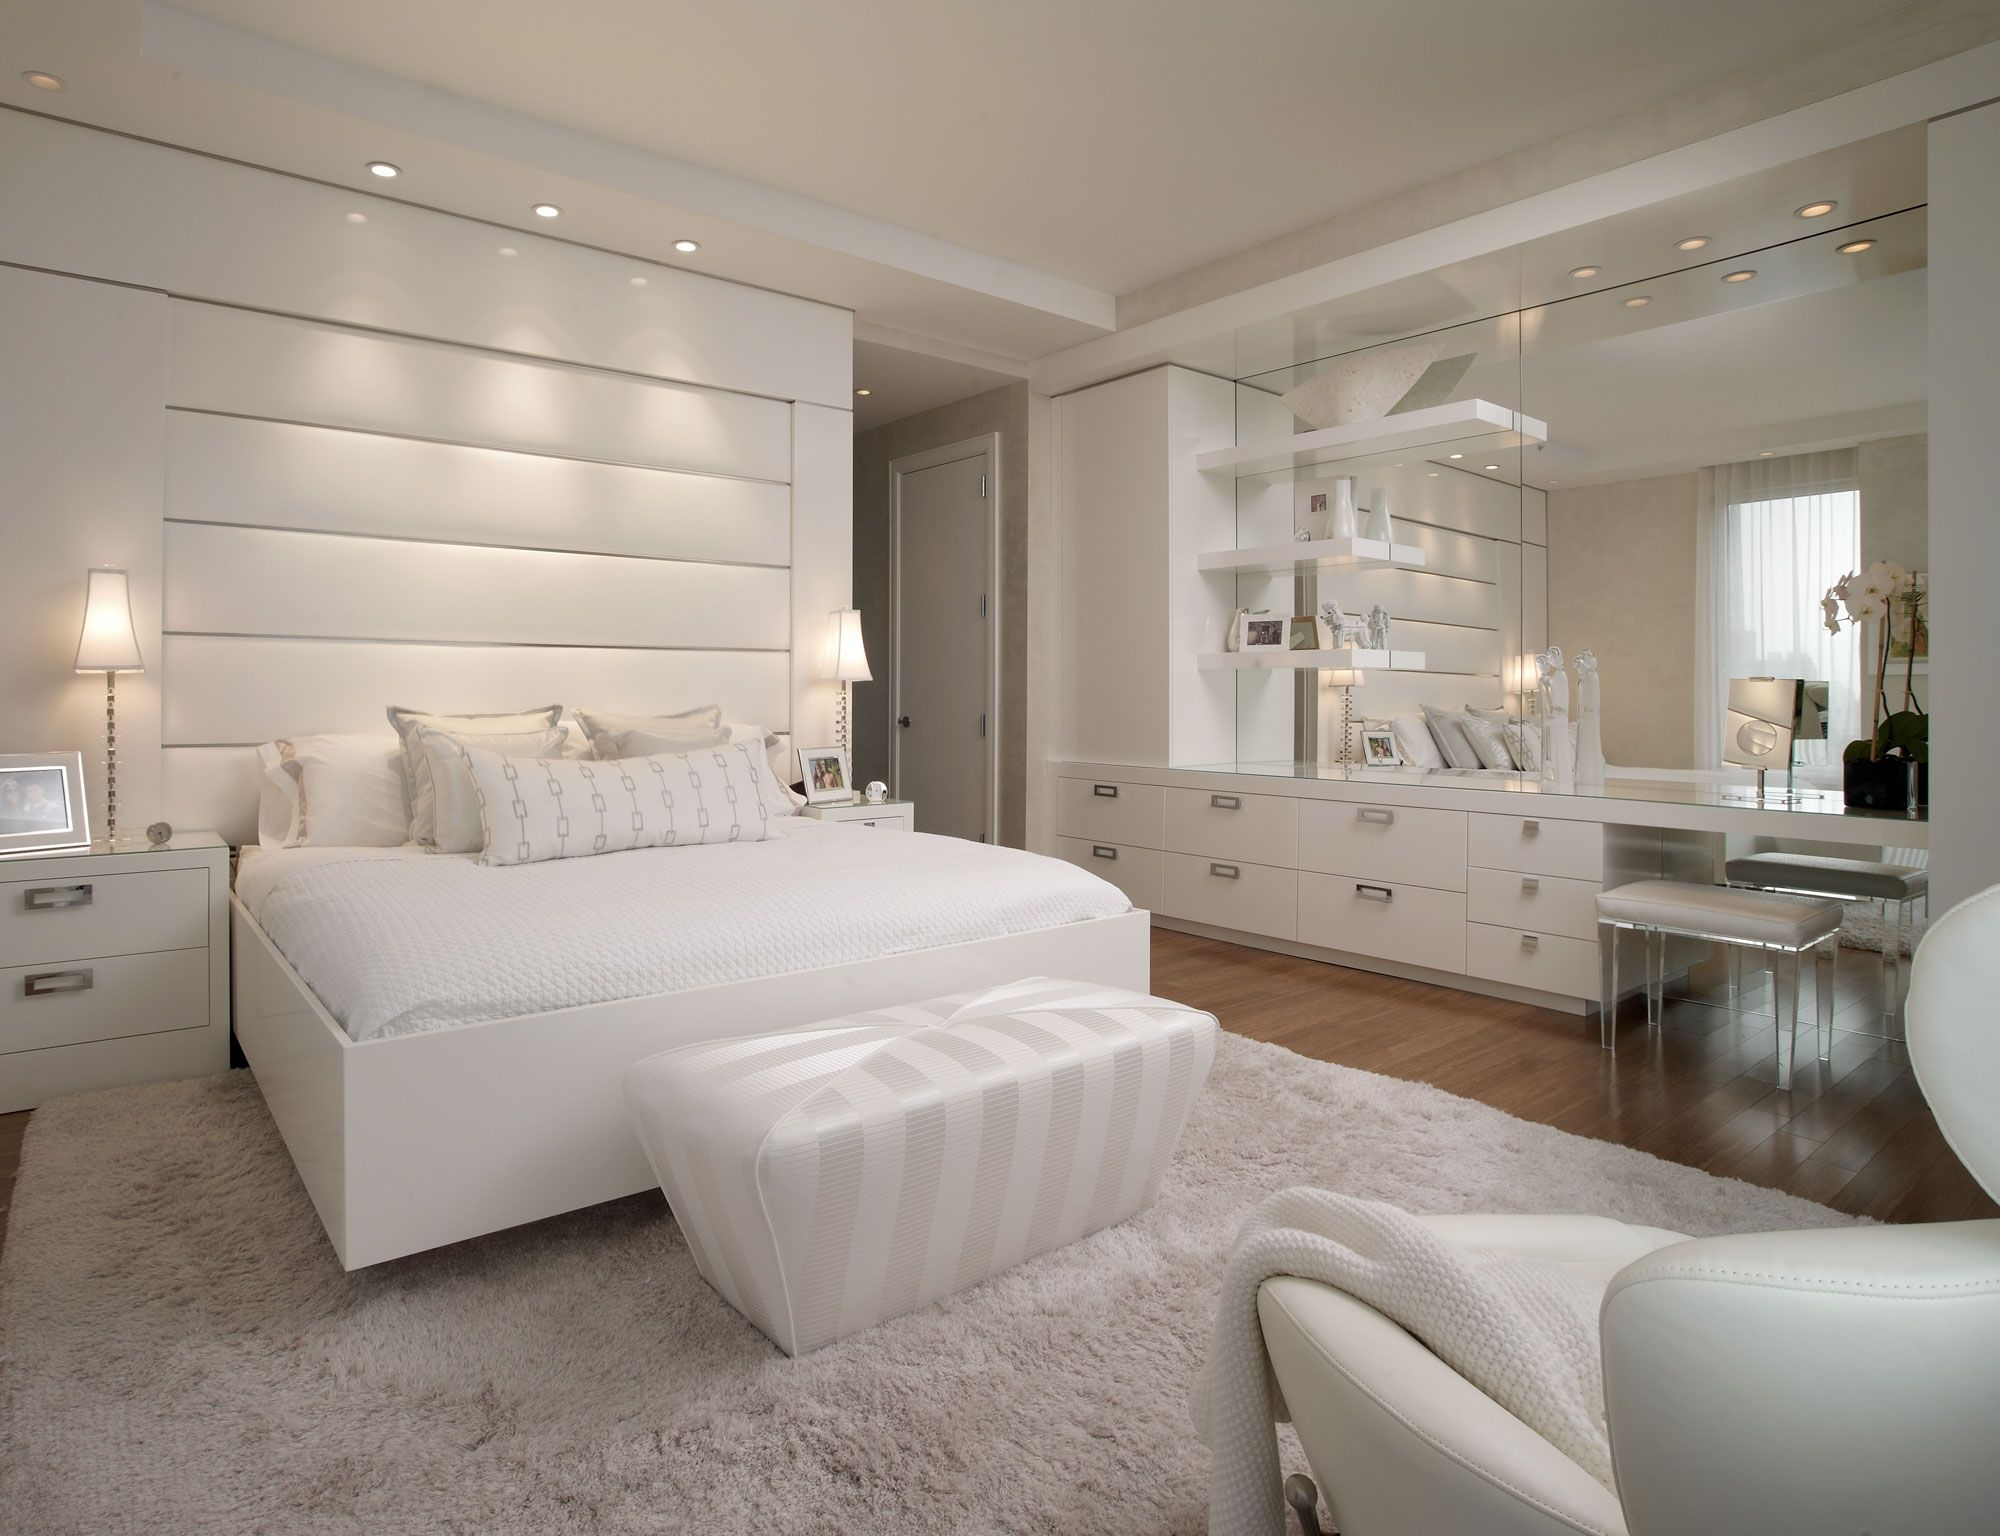 luxury all white bedroom decorating ideas amazing glamorous bedroom look luxury white scheme ideas - Bedroom Look Ideas